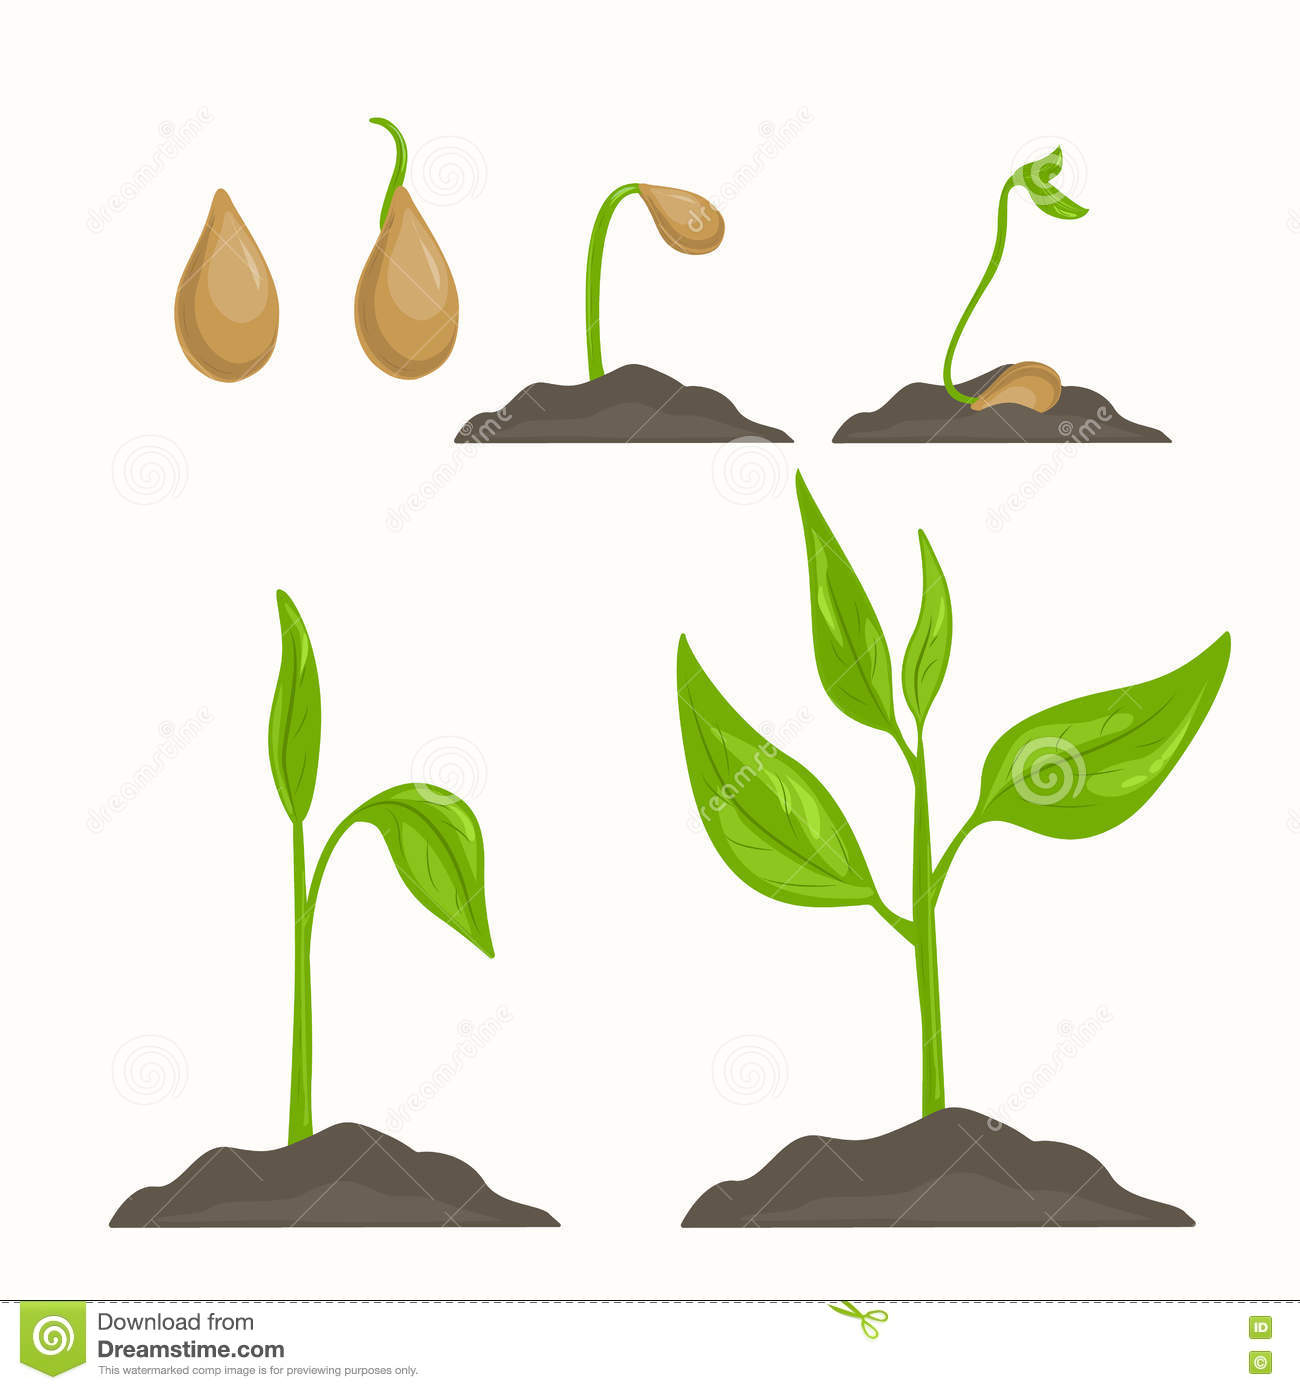 Seed Germination Diagram Fill In Electrical Wiring Process Get Free Image 3 Stages Of Drawings Germinating